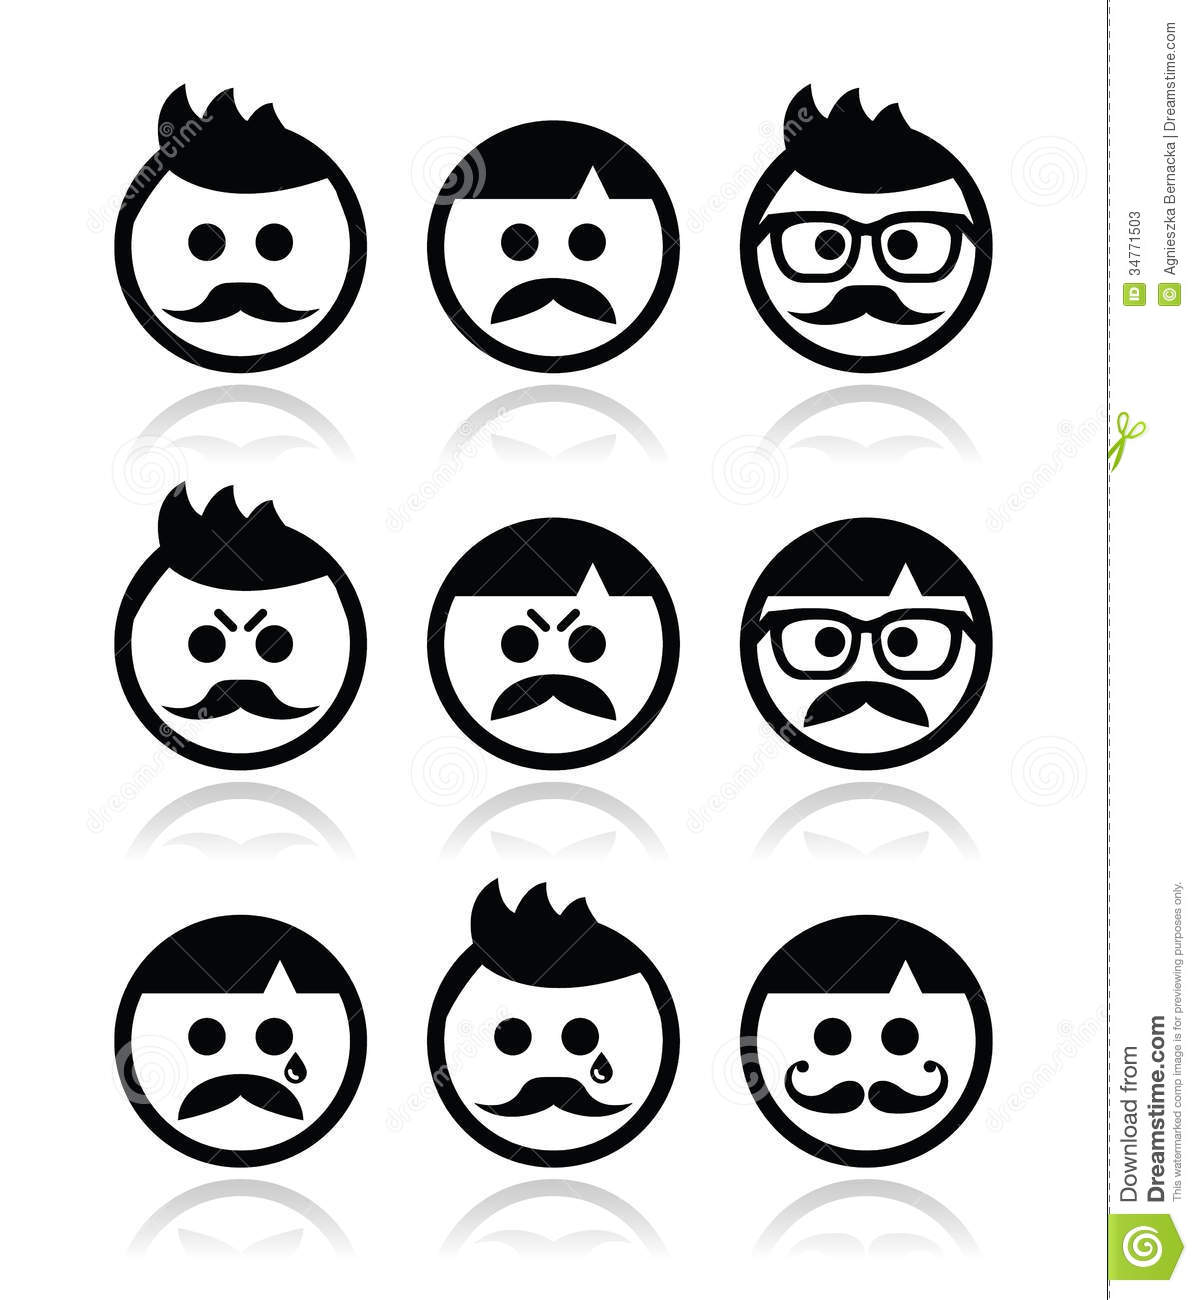 Man With Moustache Or Mustache Avatar Icons Set Stock